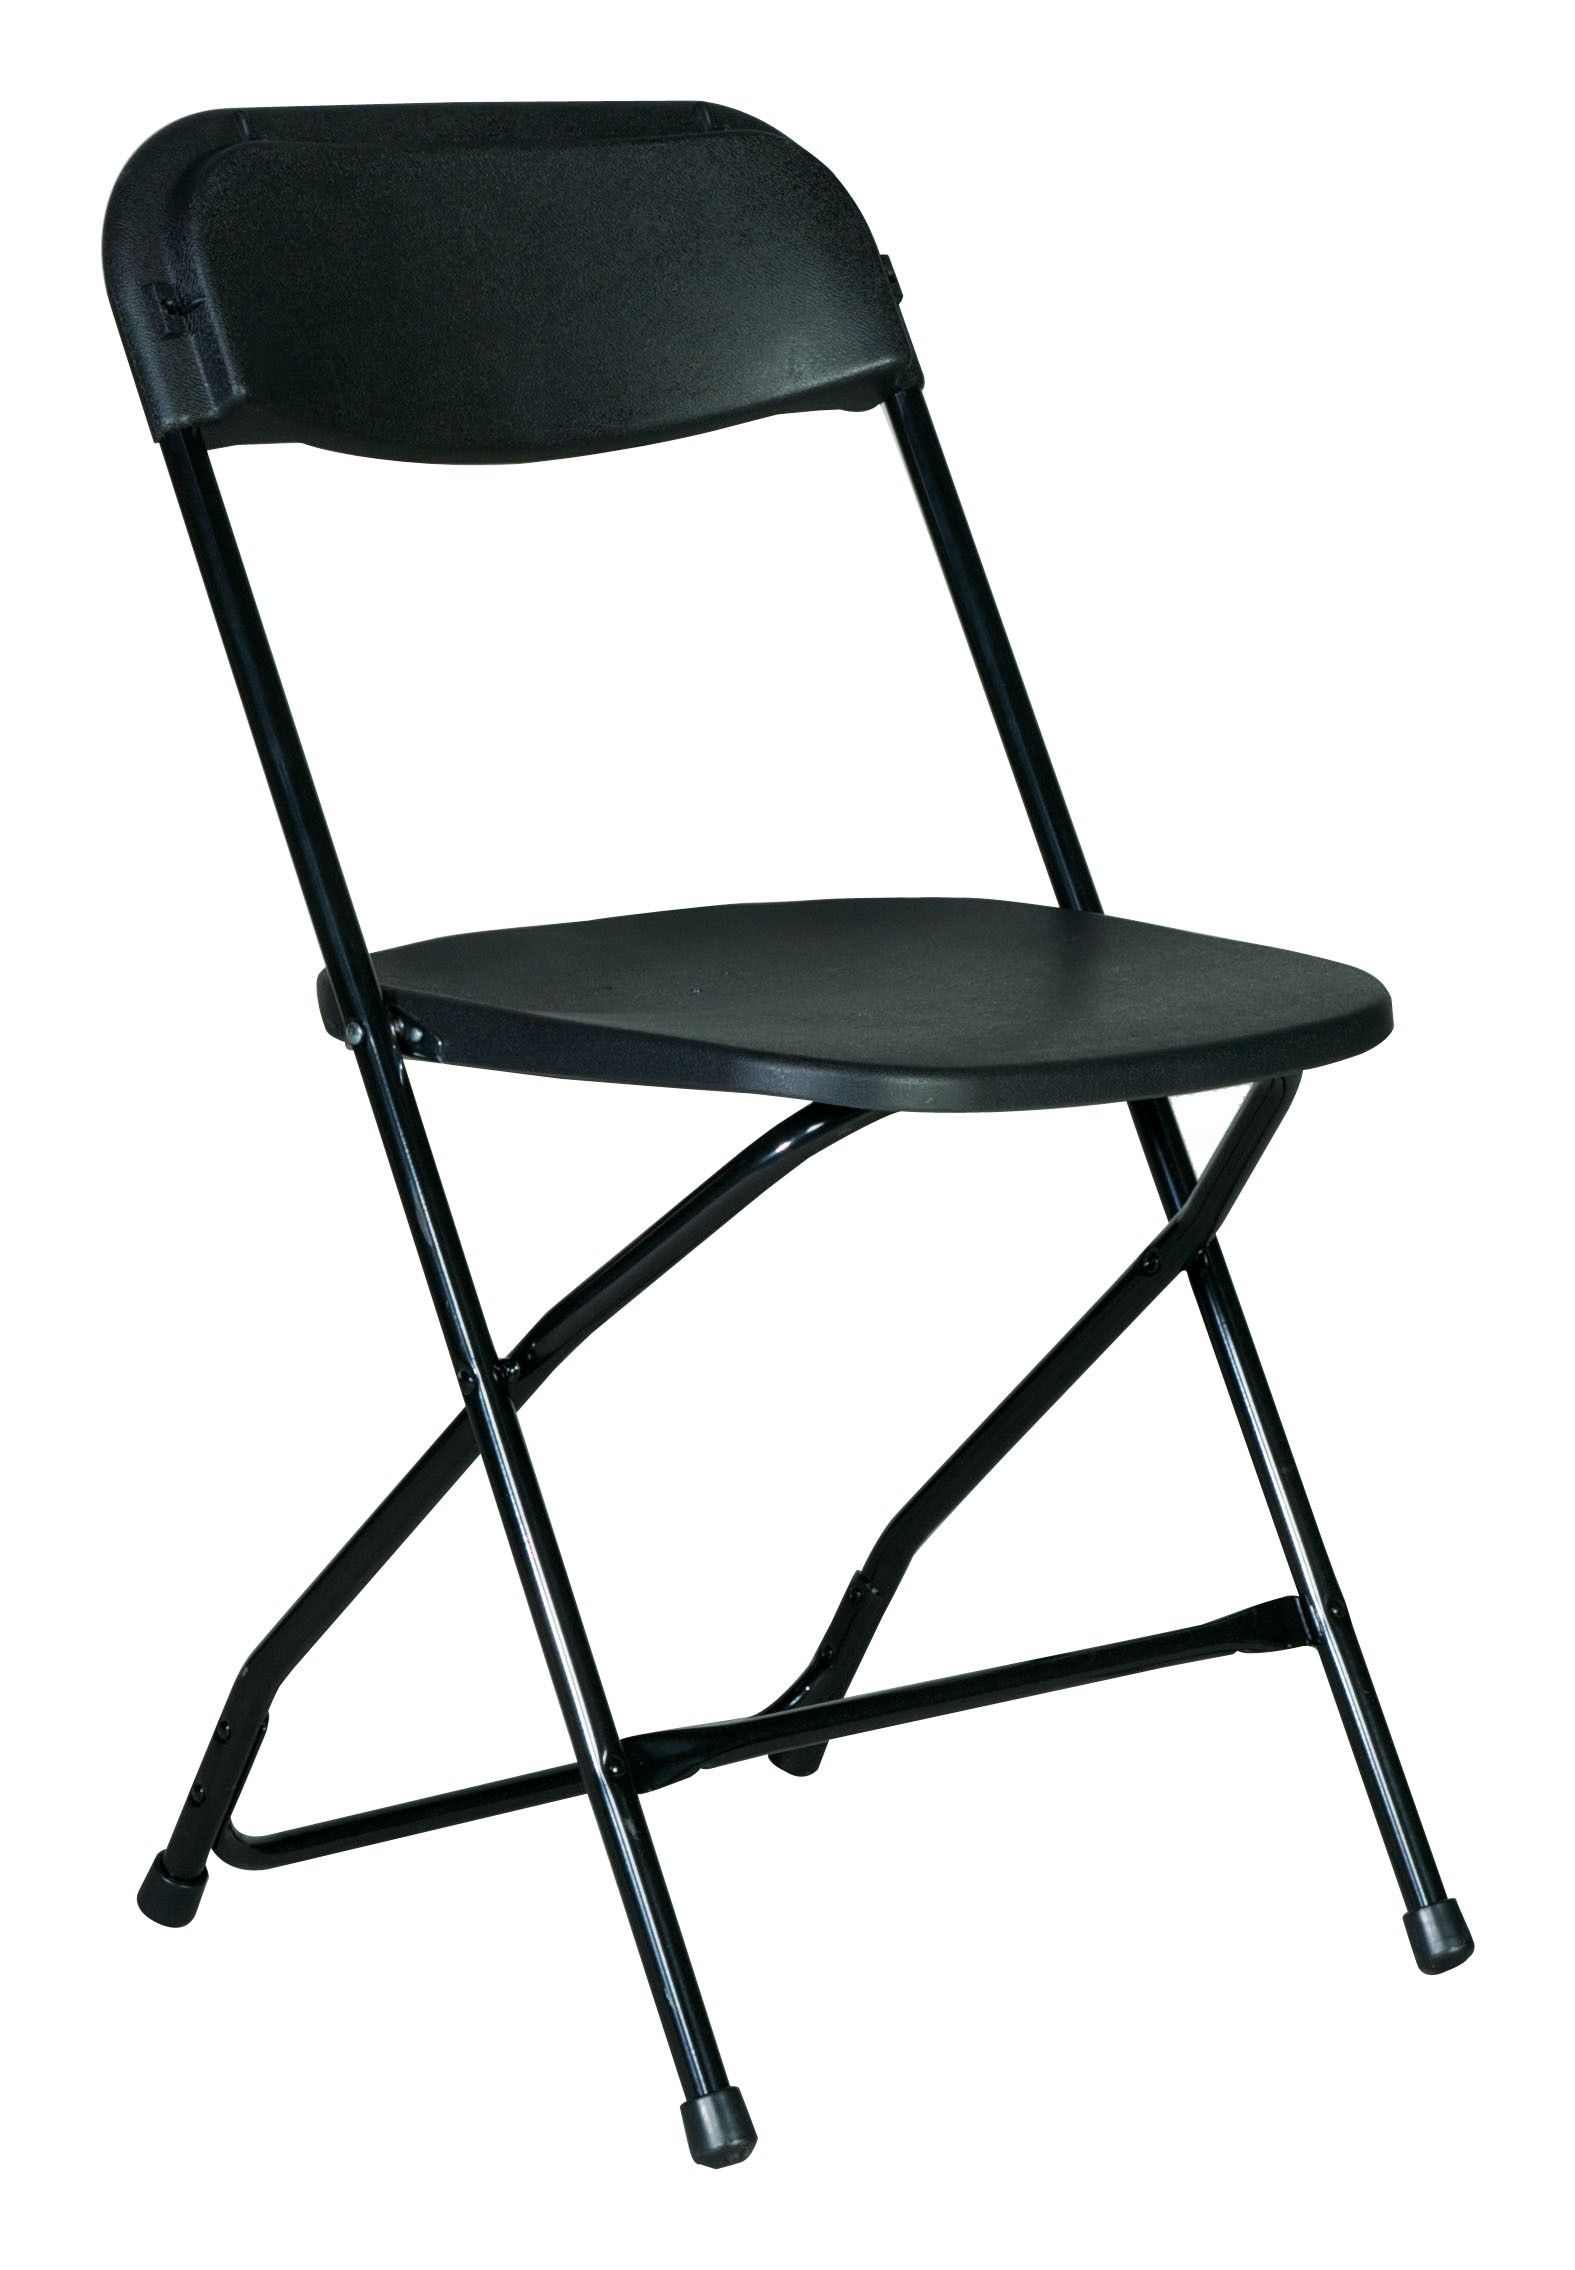 Black Basic Folding Chair Contact ABC Rentals Special Events to